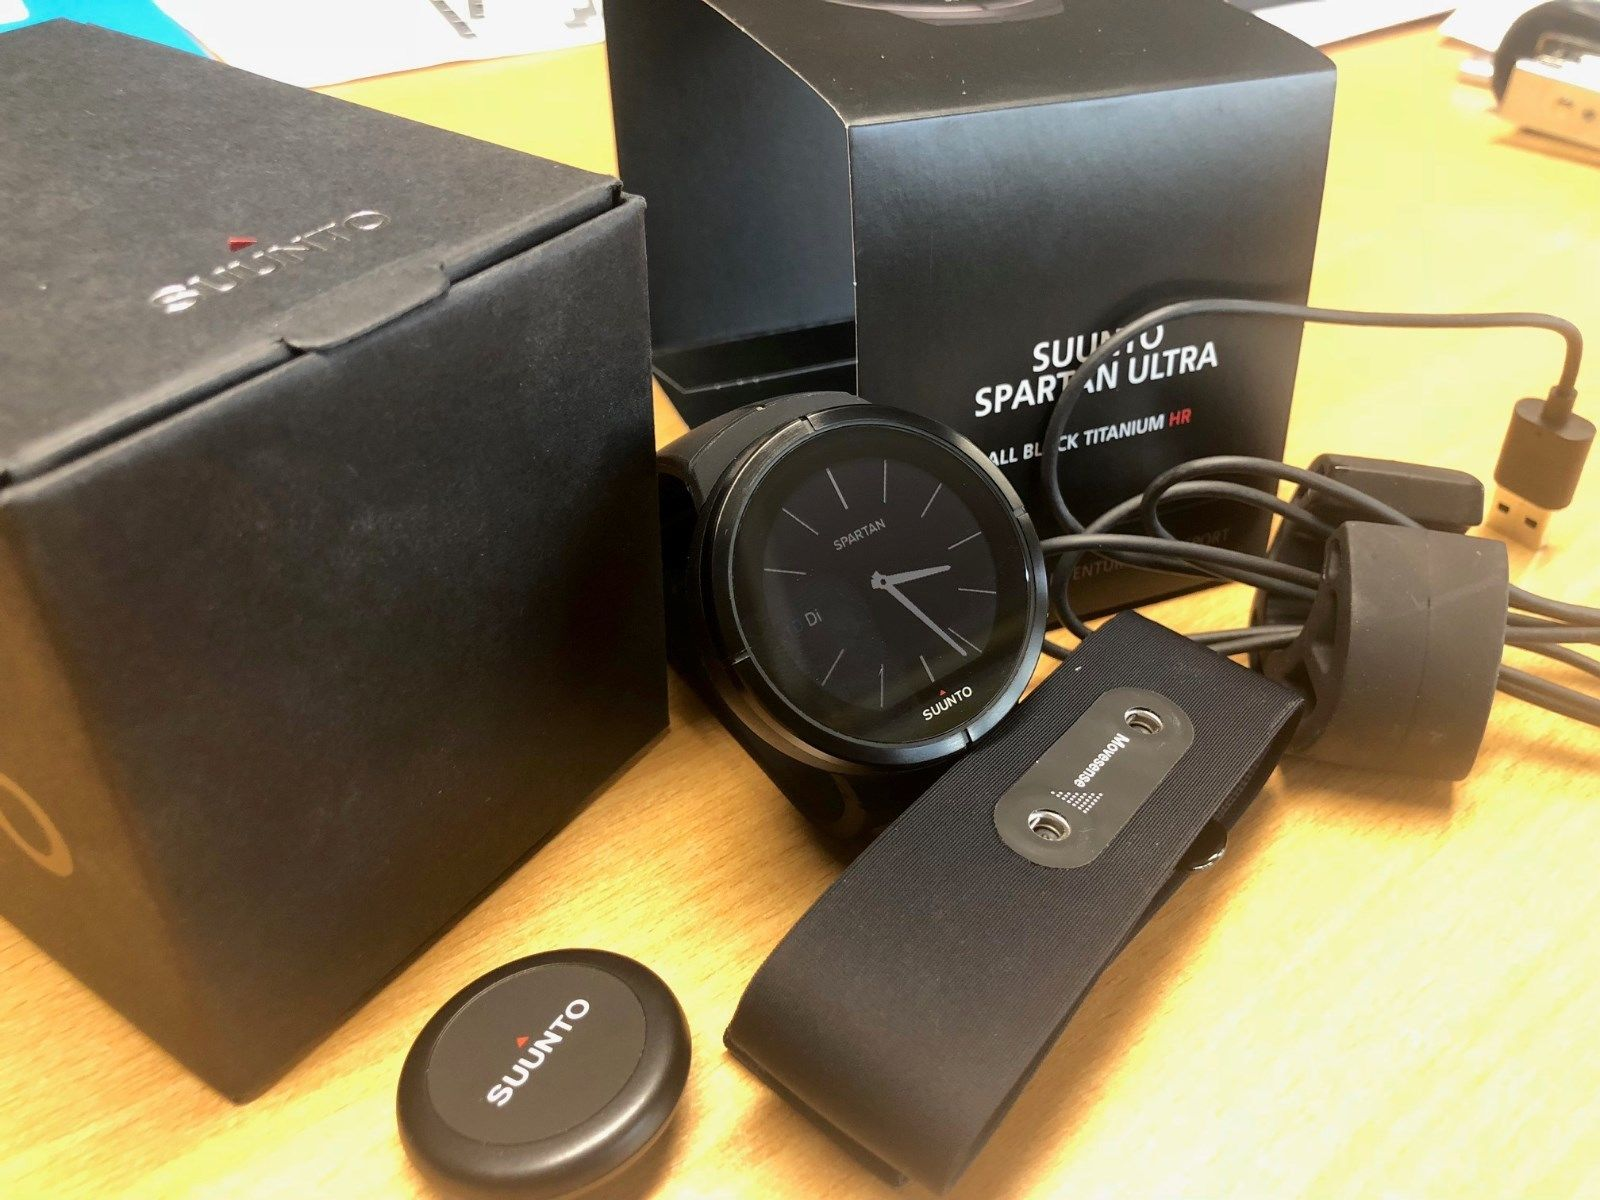 Suunto Spartan Ultra / All Black Titanium HR